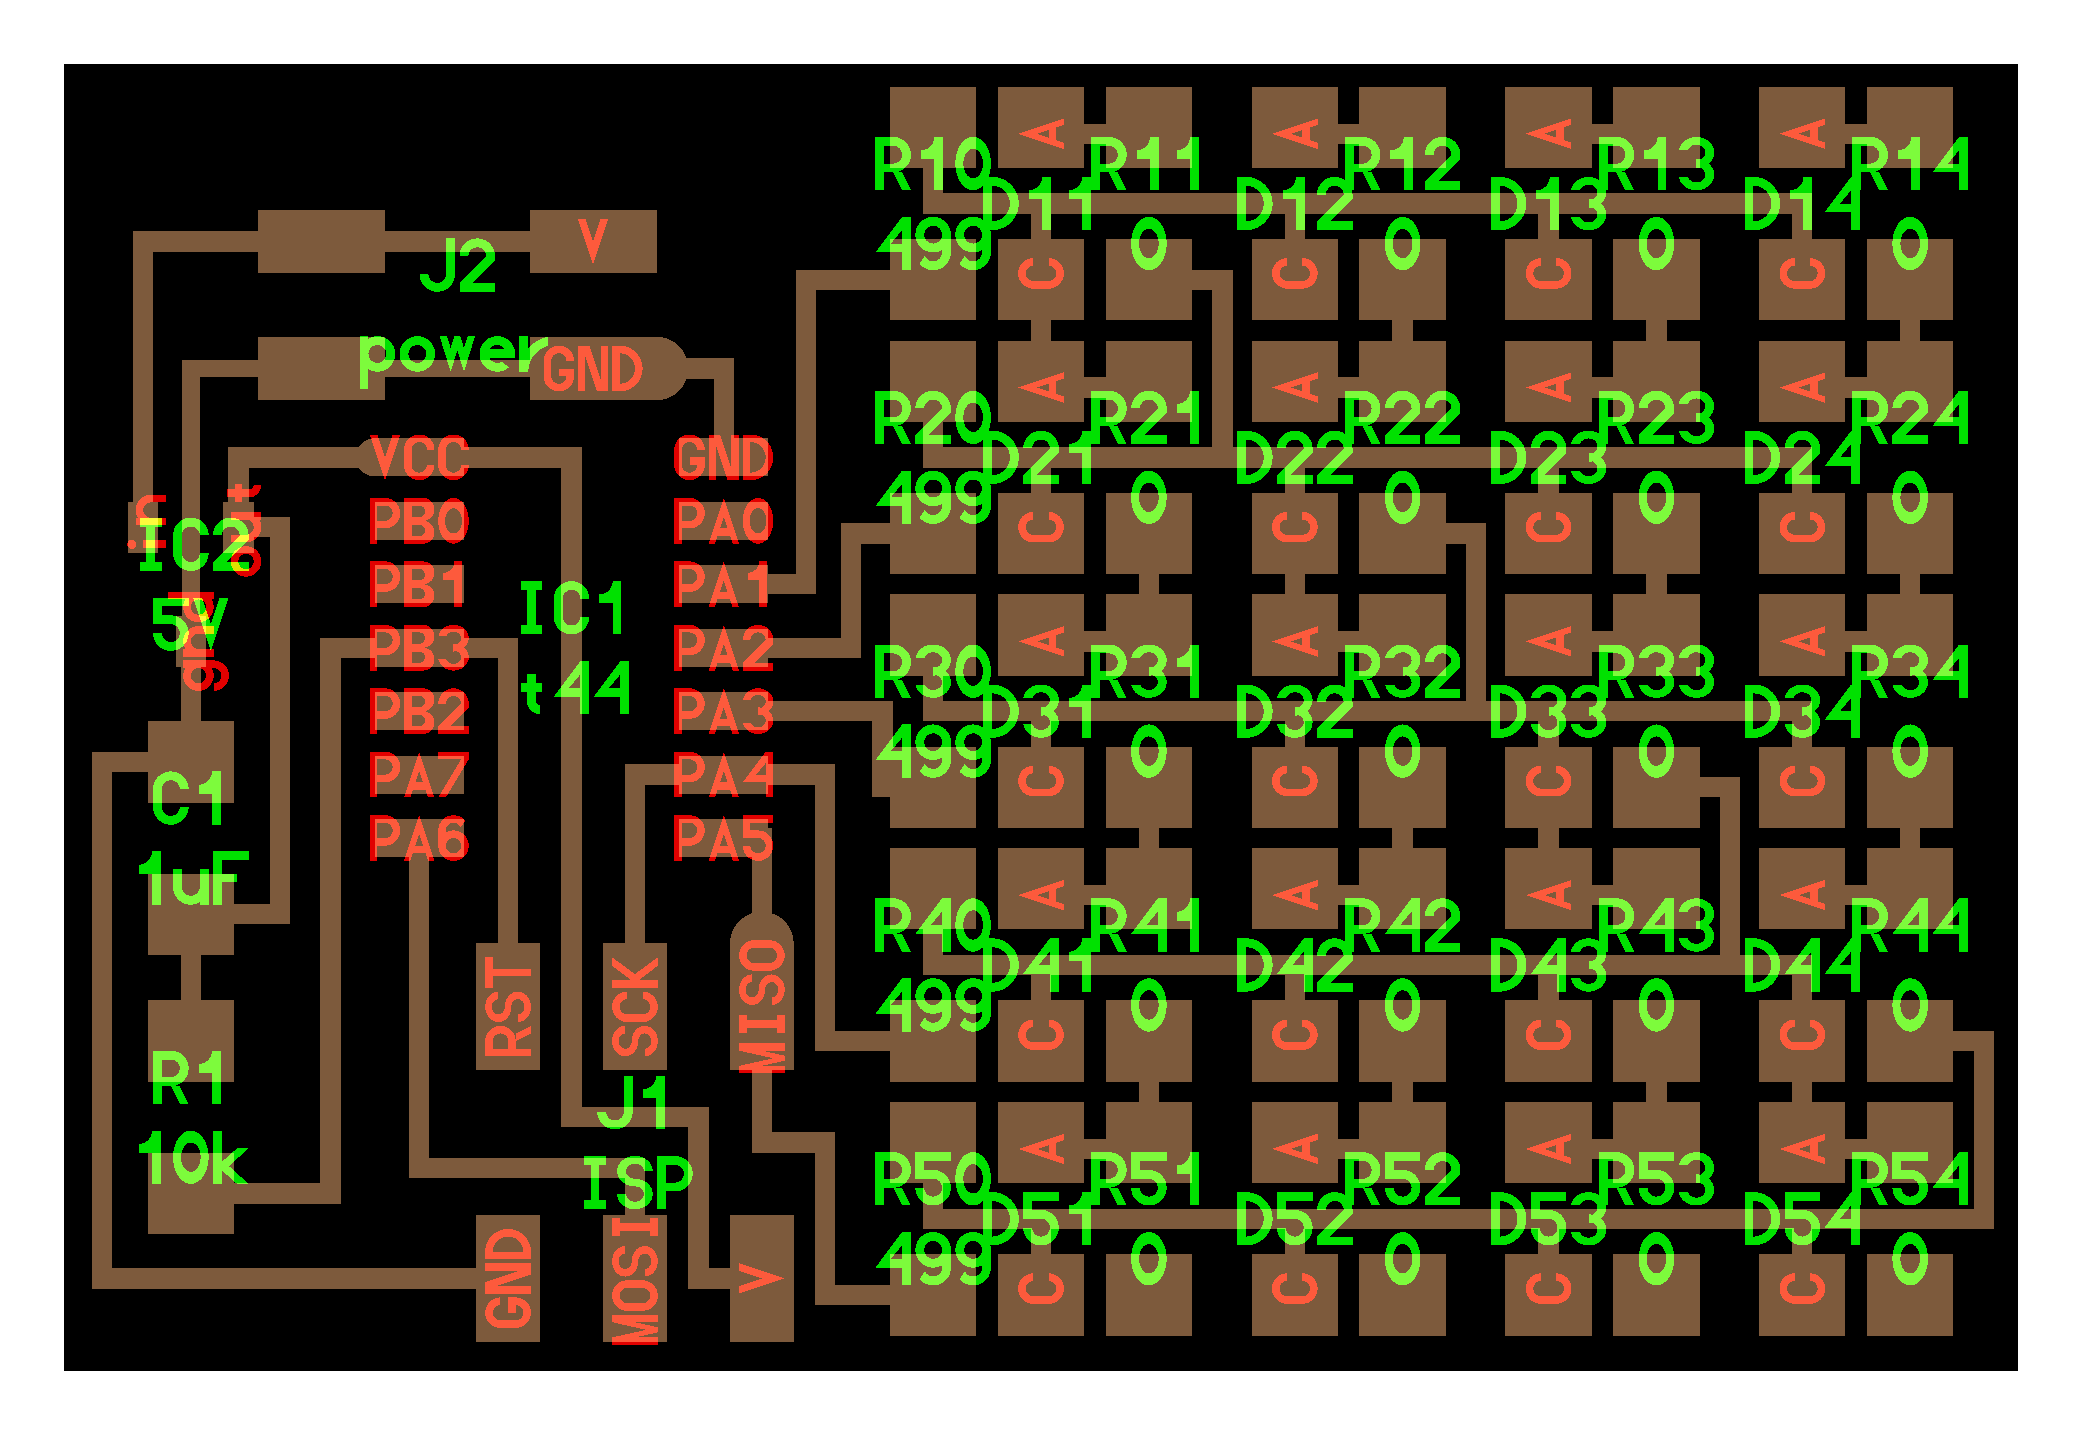 Output Devices Figure 2 Schematic View In Eagle Pcb Software I Used To Redesign The Board And Added A Button At Pa7 Of Attiny 44 Which Was Free Remaking